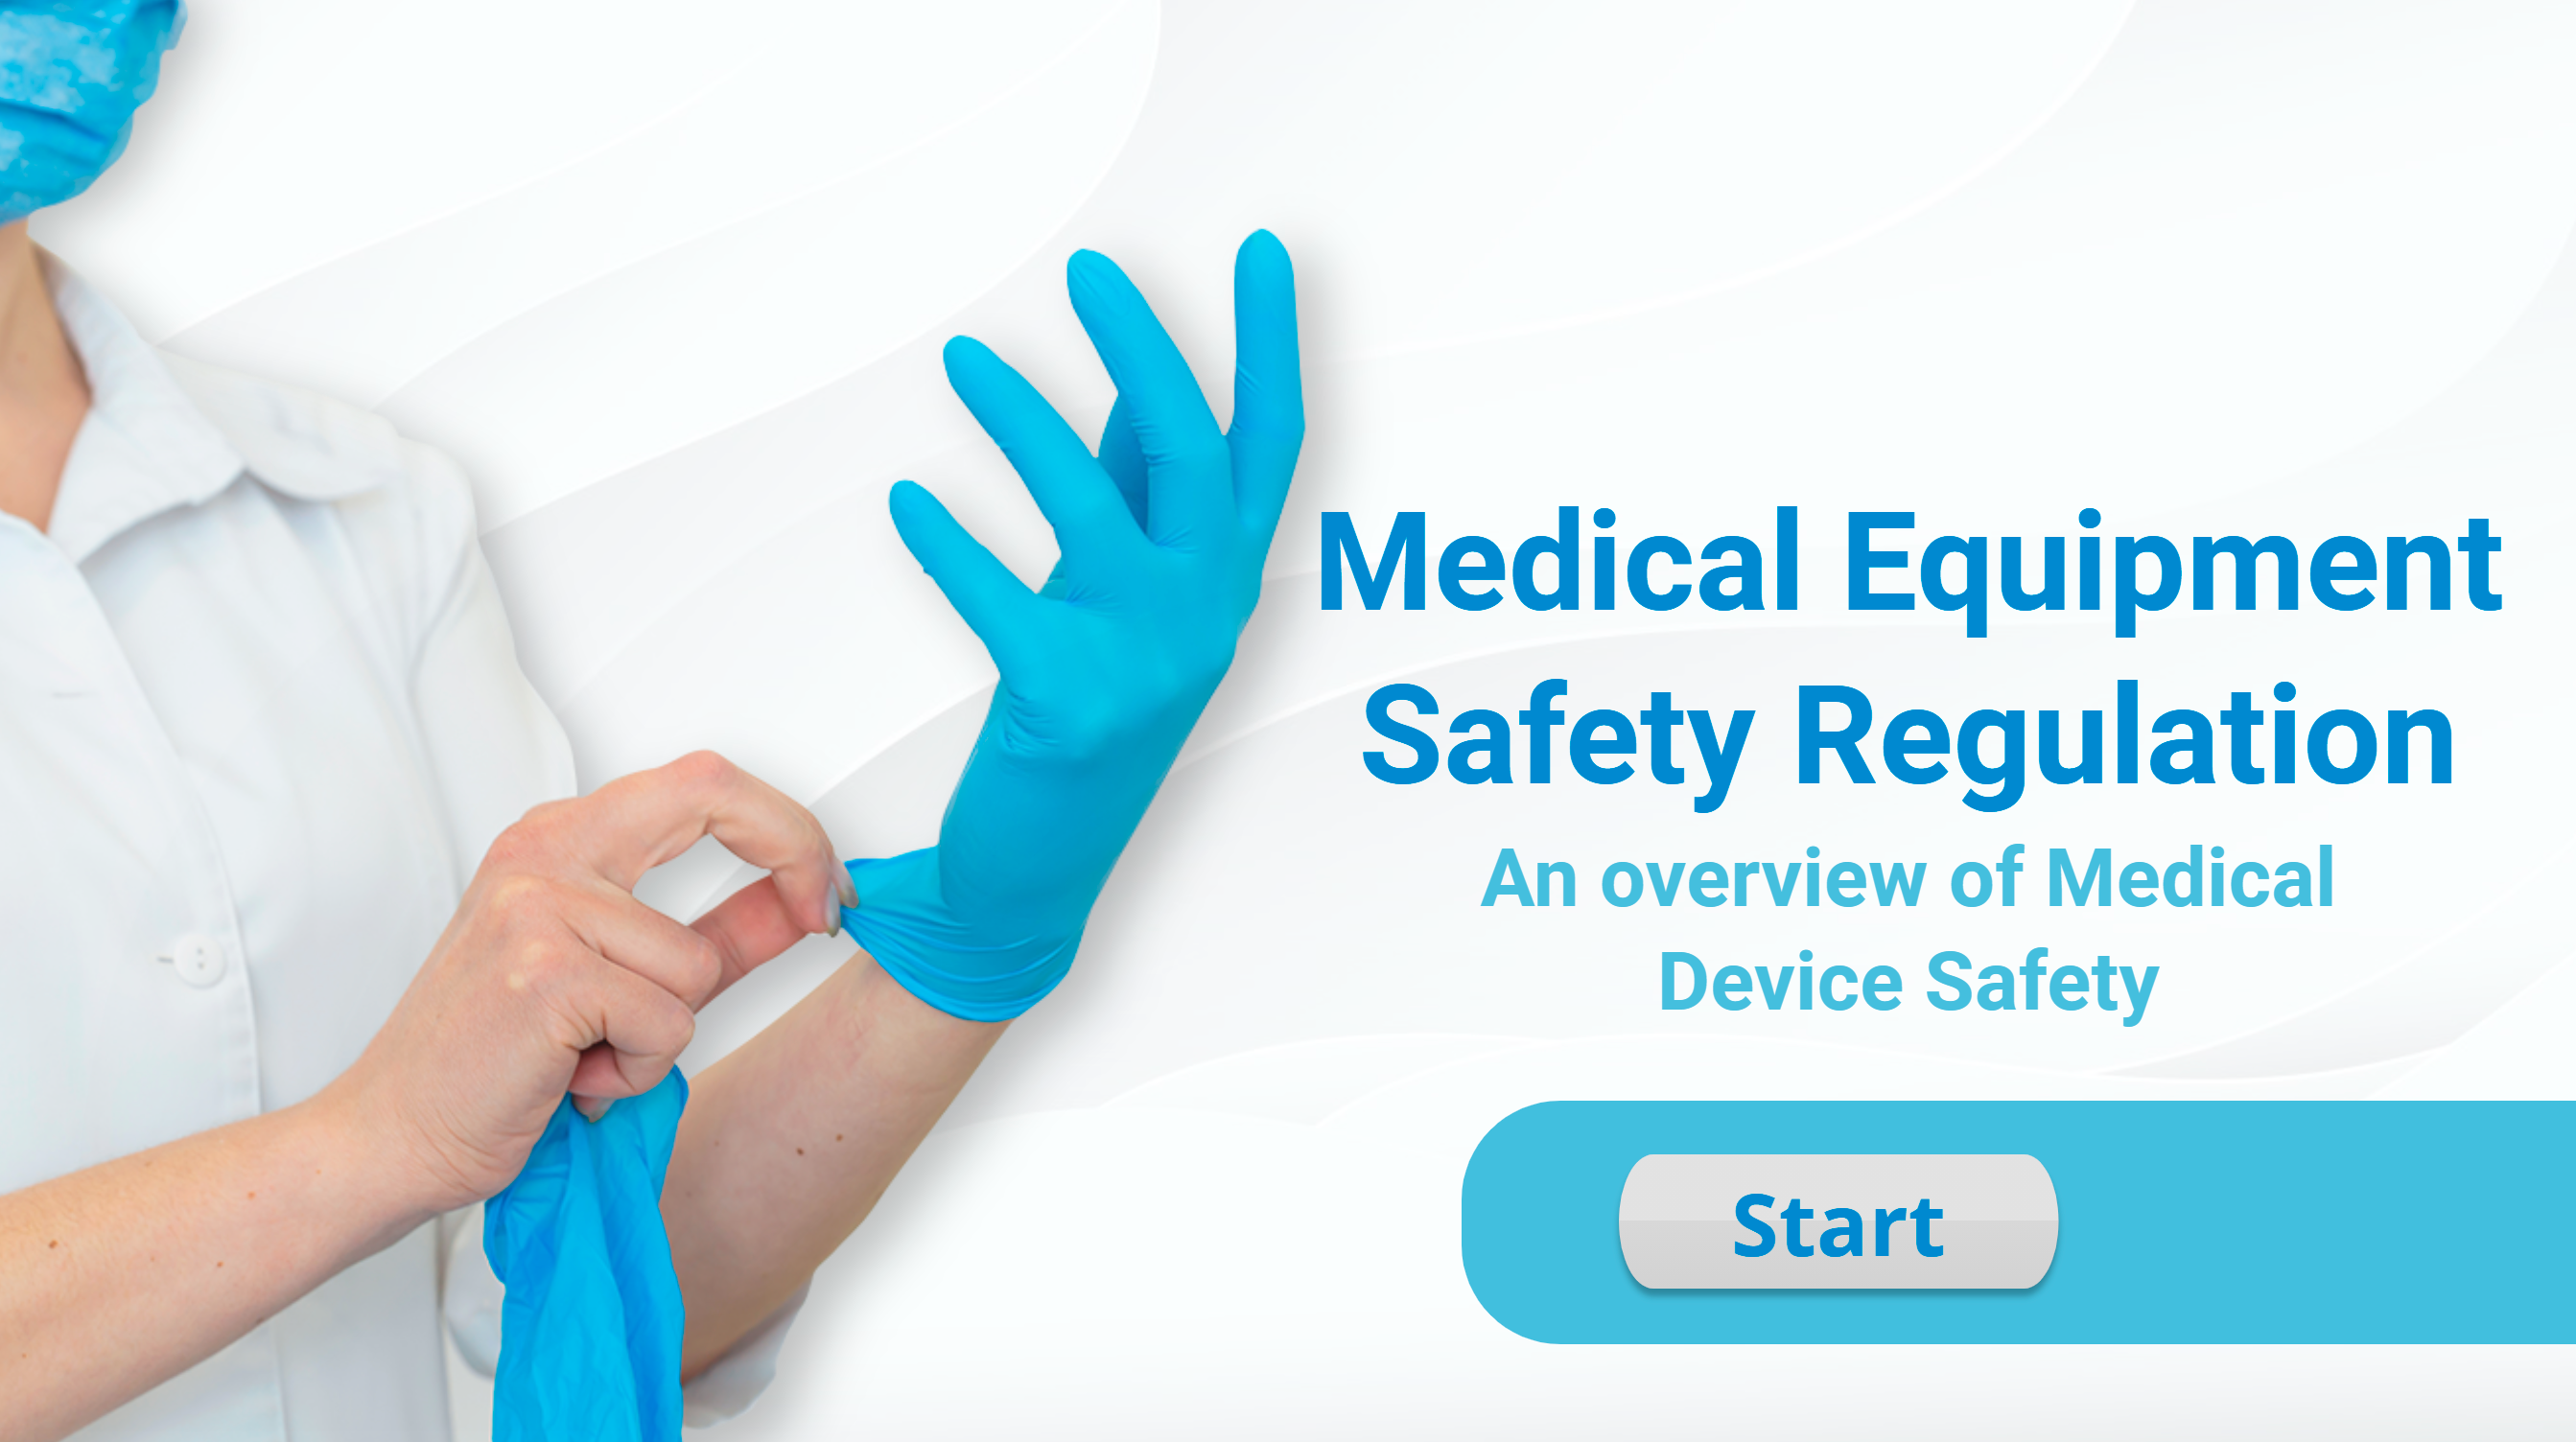 Medical Equipment Safety